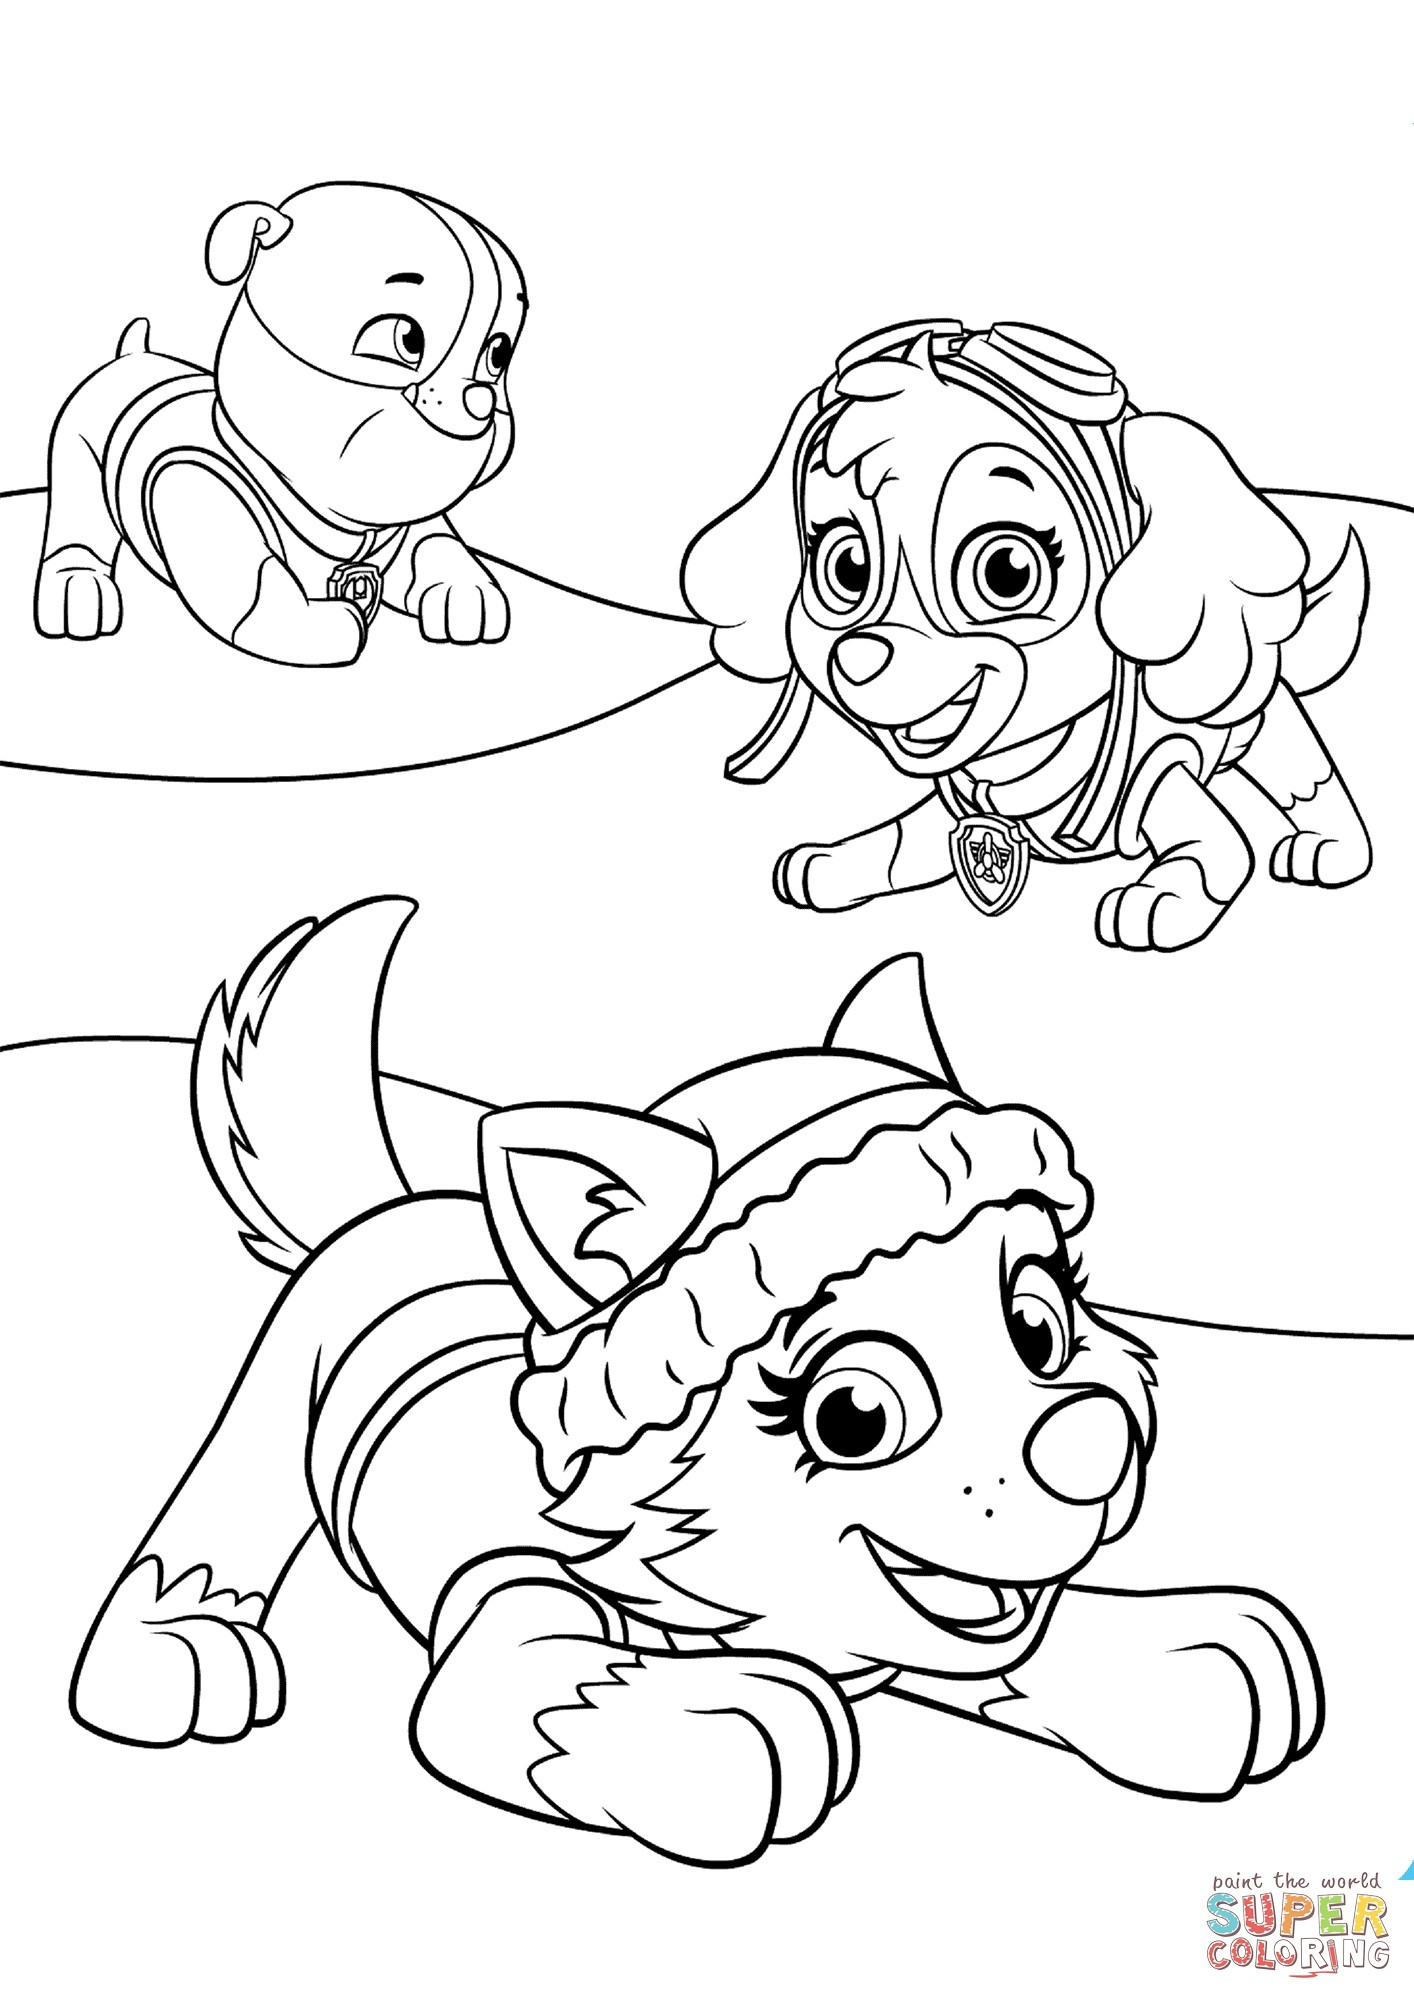 paw patrol vehicles coloring pages paw patrol chase coloring pages printable patrol vehicles paw coloring pages